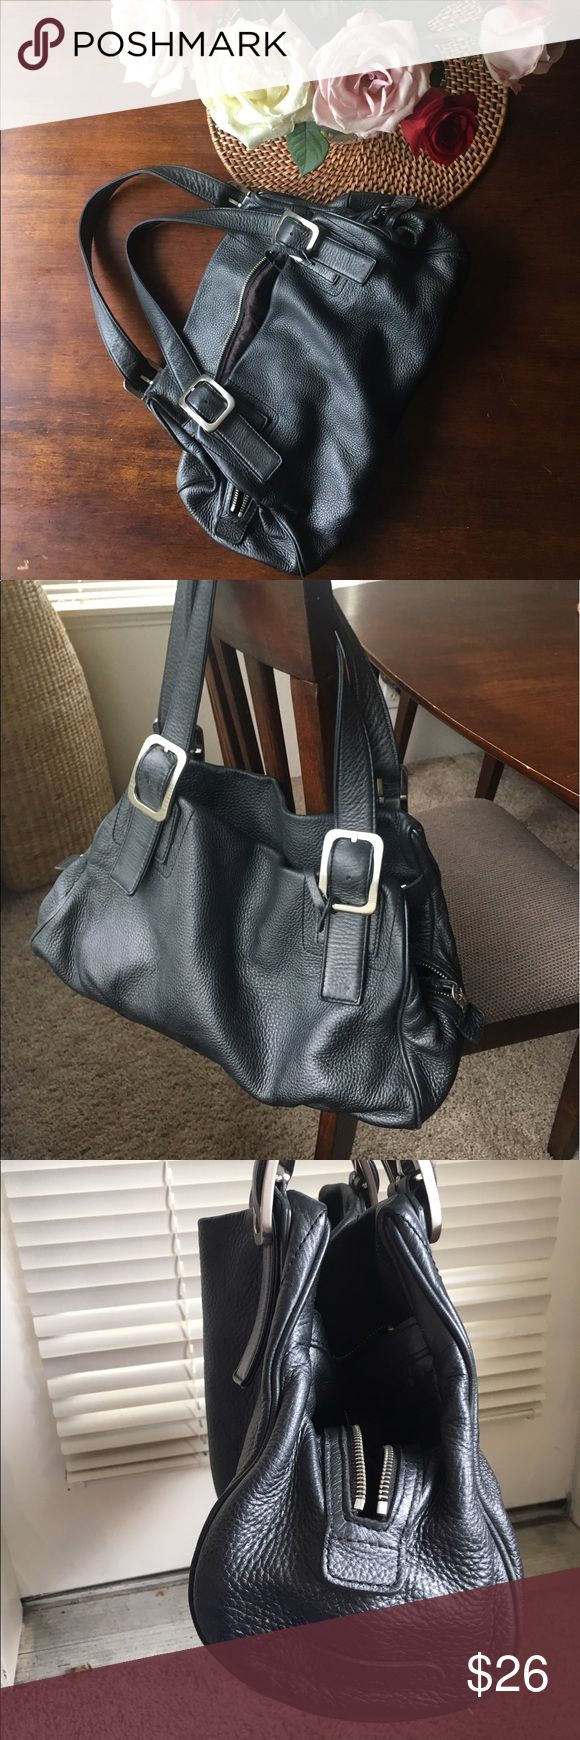 Cole Haan Purse Cole Haan leather shoulder bag.  Pewter color, soft leather.  Lots of pockets and storage.  Some signs of wear- spot in the bottom of the bag.  A lot of life left in this beautiful bag! Cole Haan Bags Shoulder Bags